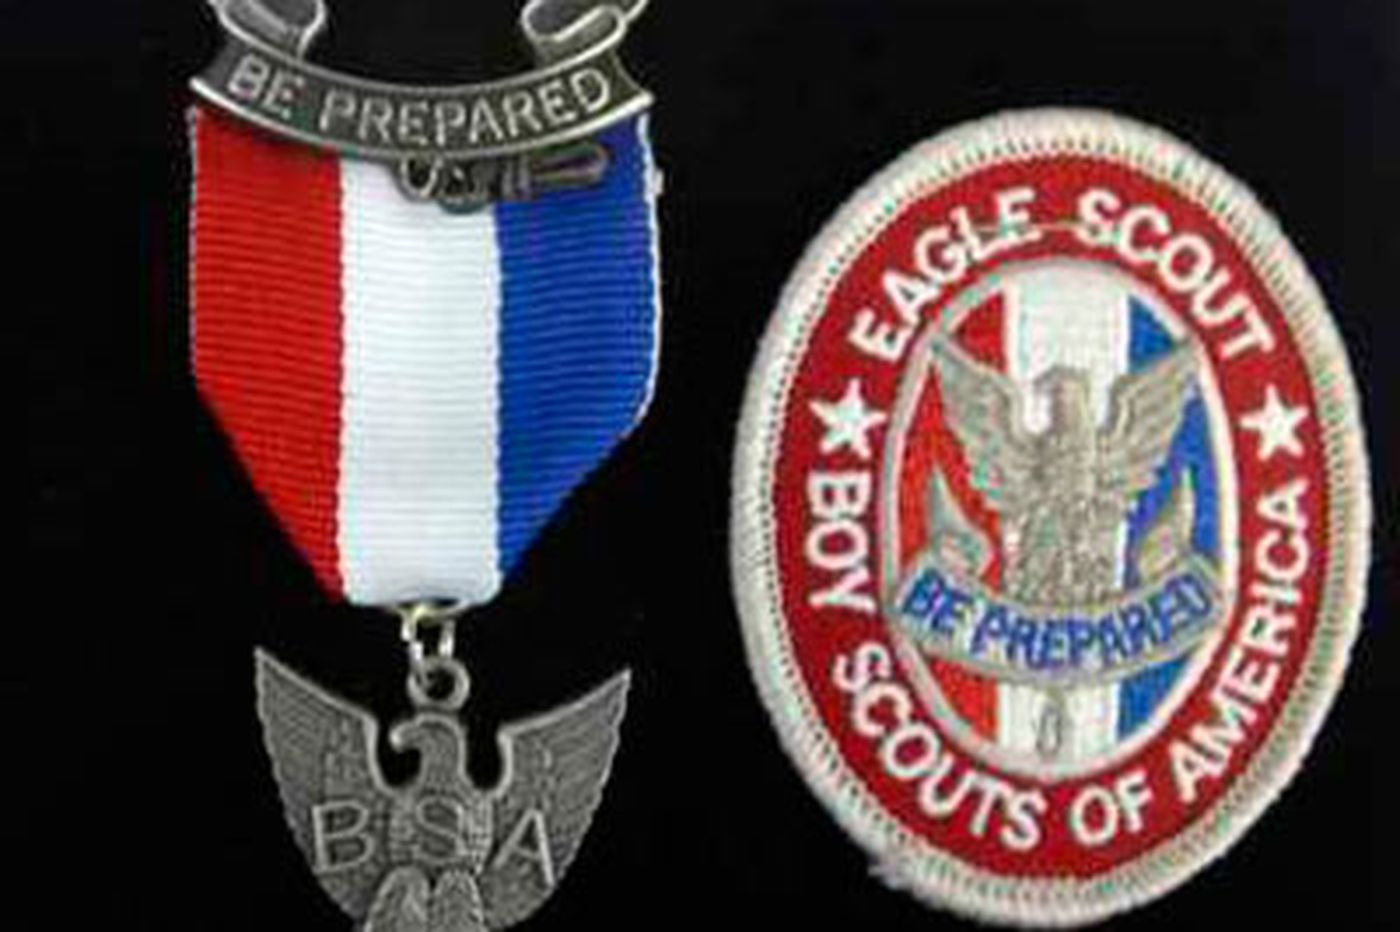 N.J. Eagle Scout accused of sexually assaulting 5 boys